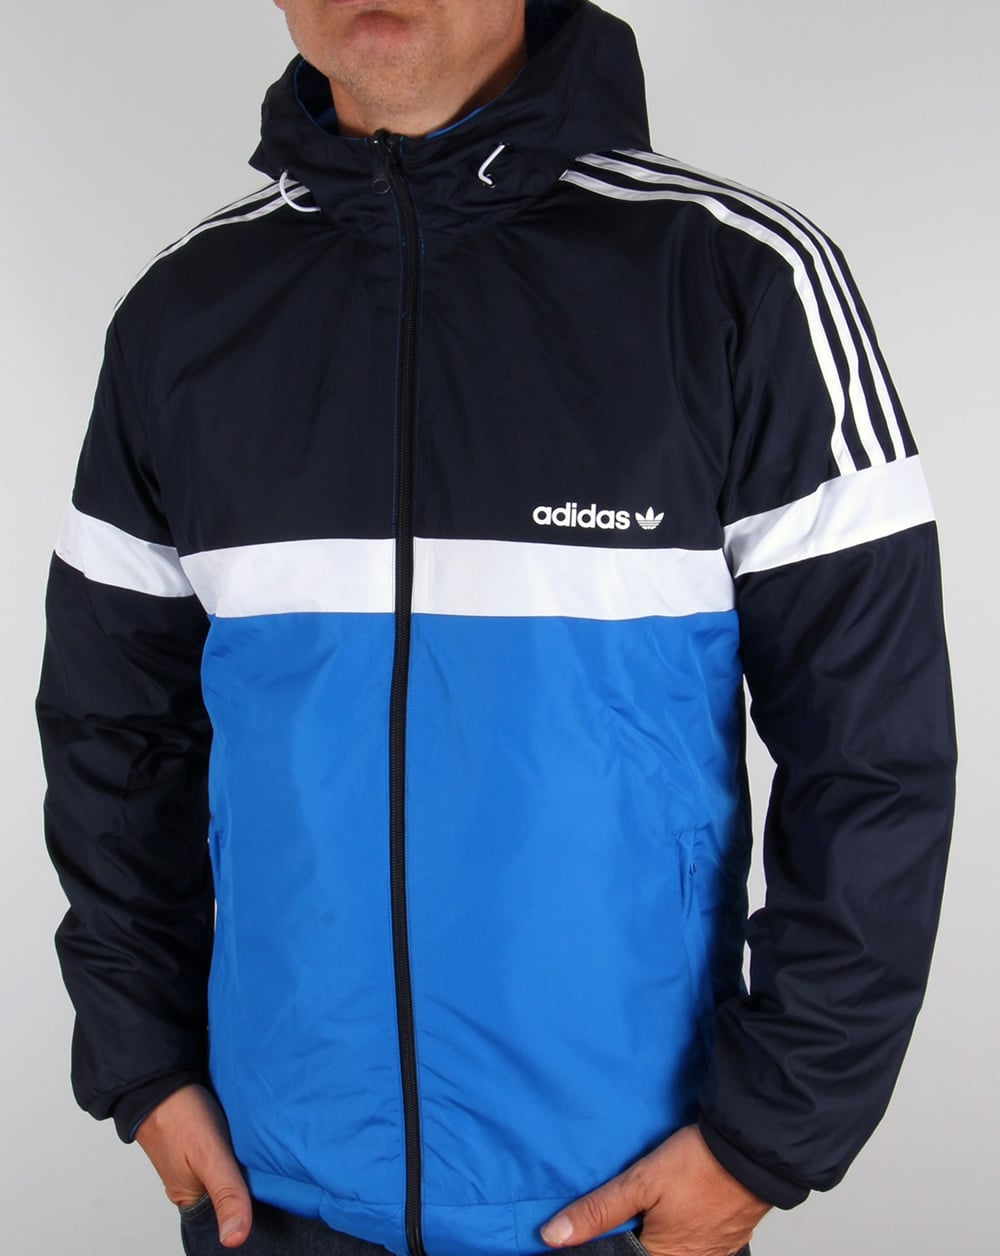 84e9cf2df49d adidas Originals Adidas Originals Reversible Windbreaker Navy Bluebird